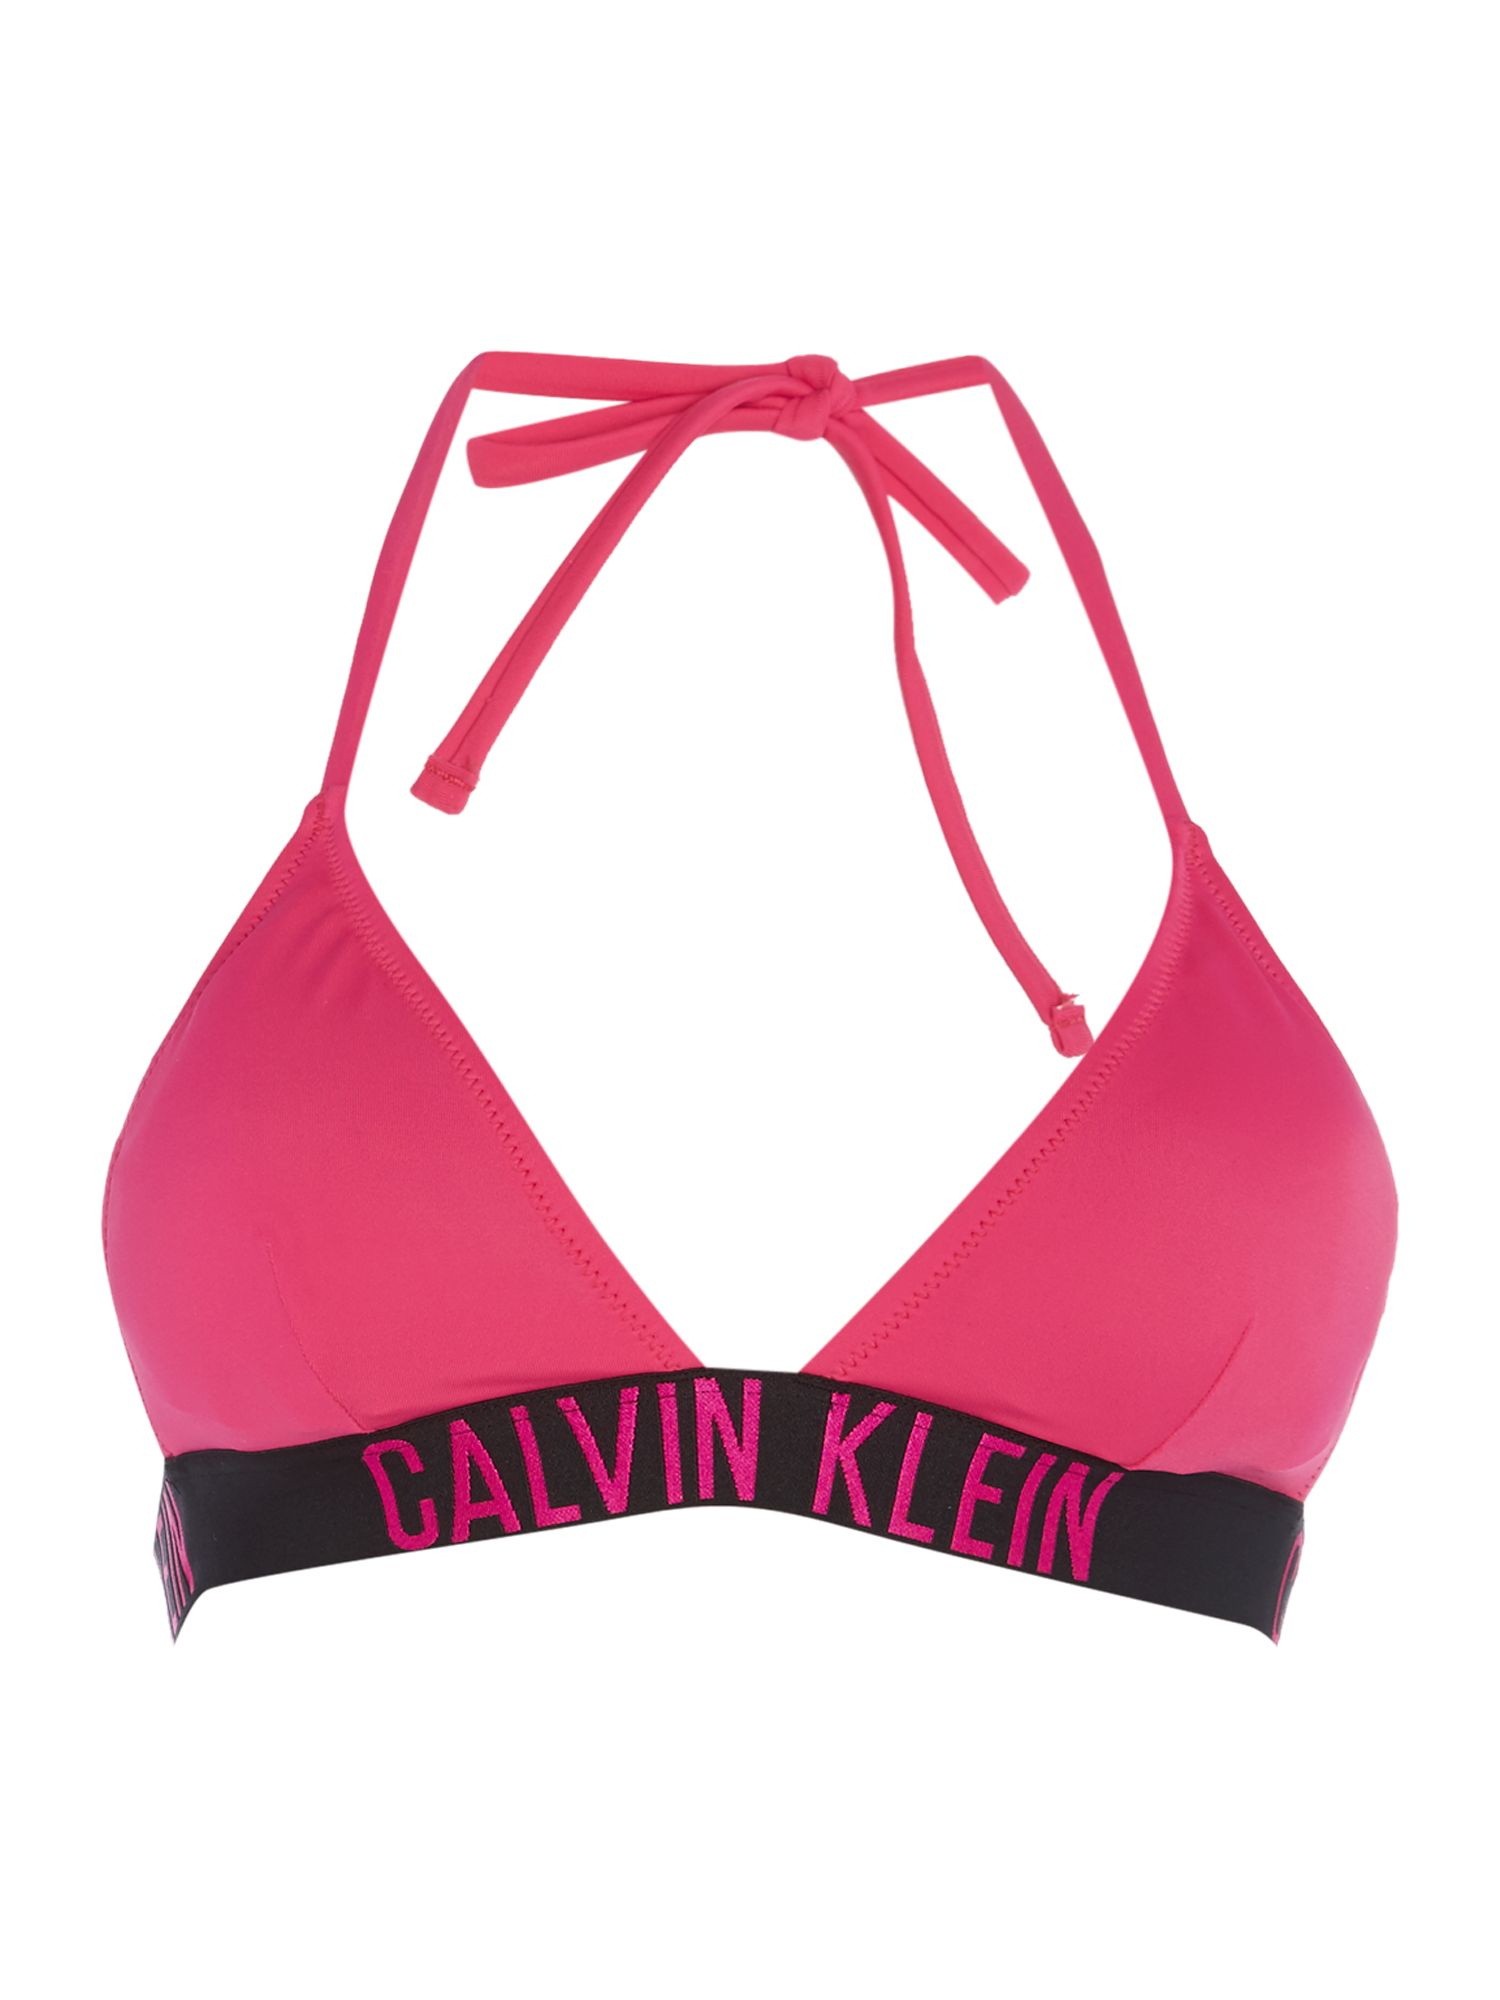 calvin klein intense power tirangle bikini top in pink lyst. Black Bedroom Furniture Sets. Home Design Ideas